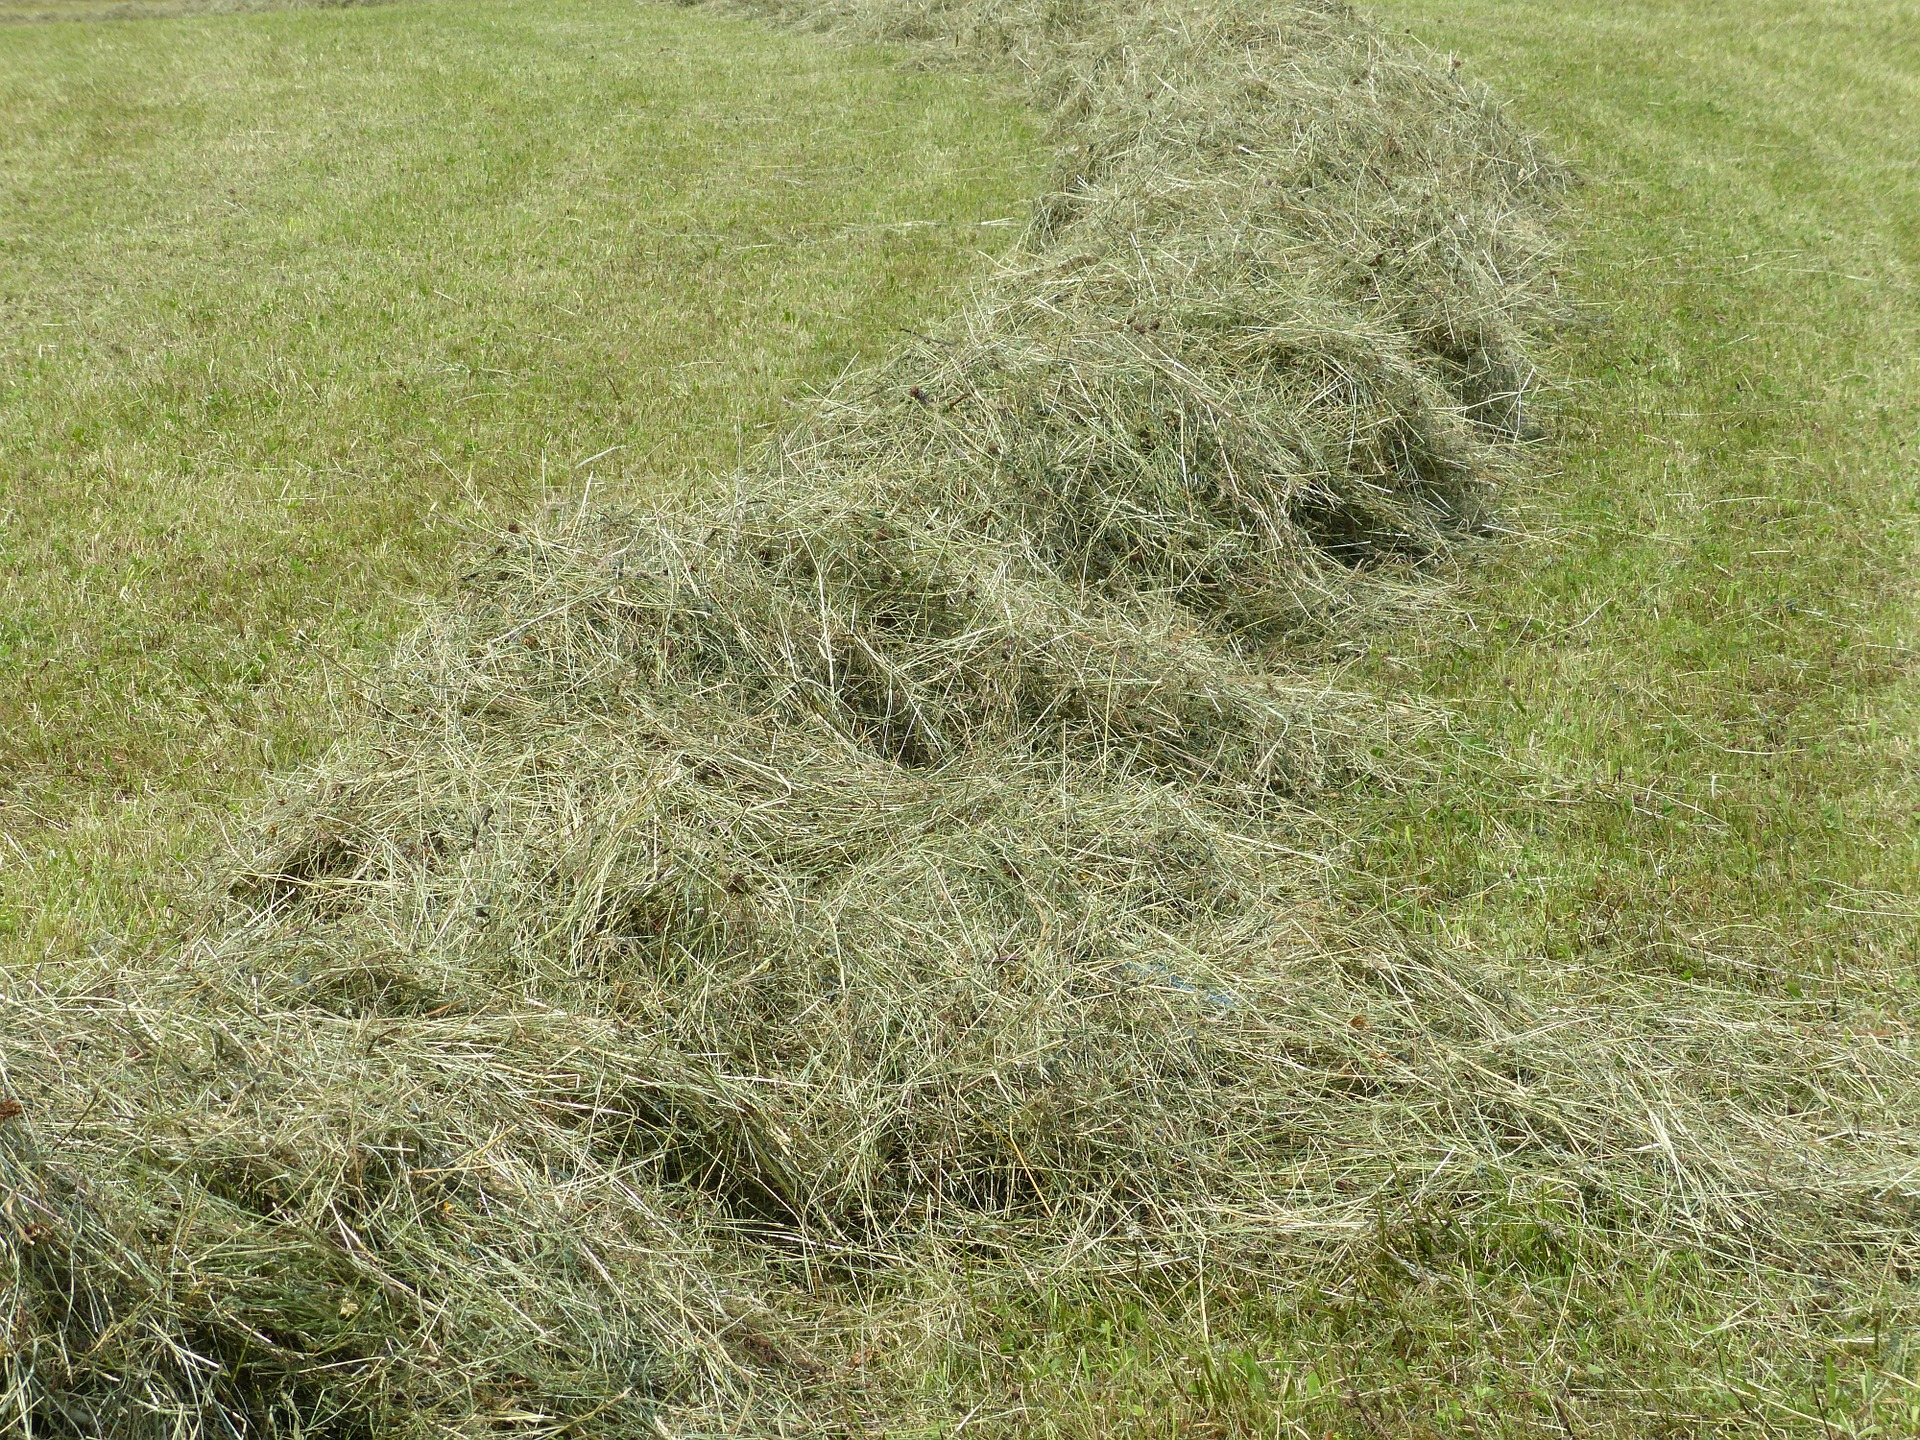 how to dethatch your lawn